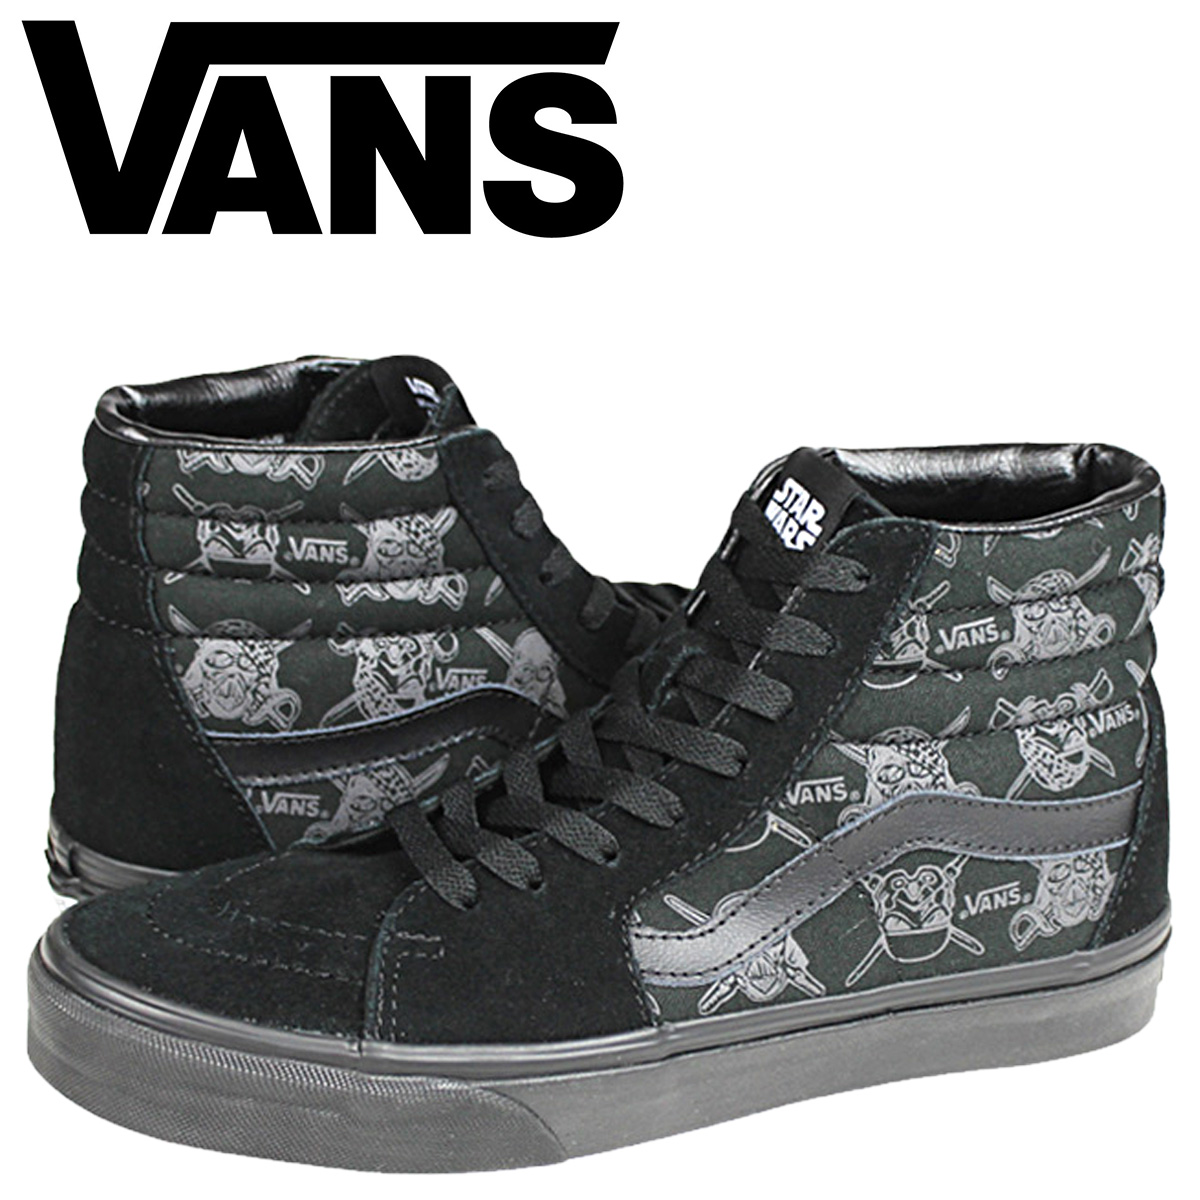 Whats up Sports  VANS vans Star Wars sneakers collaboration STARWARS SK8-HI  VN-0TS9EX8 men s women s shoes black  c974275ab1